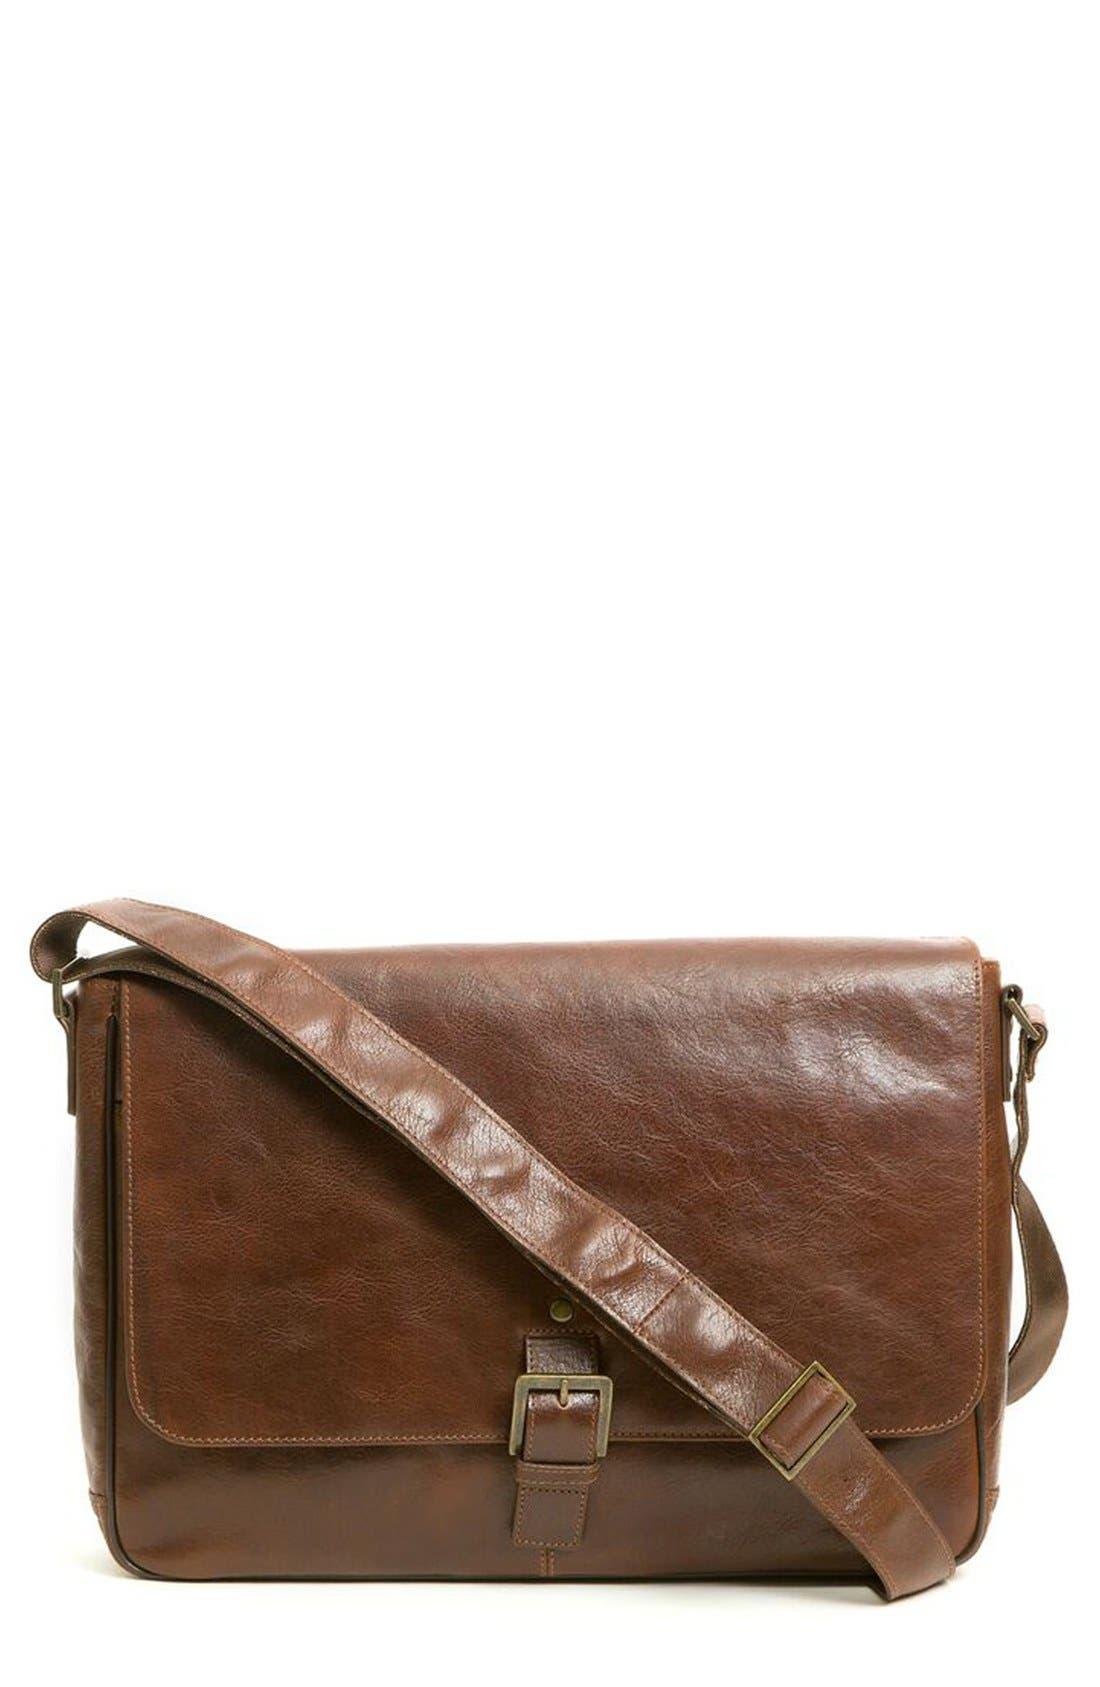 'Becker' Leather Messenger Bag,                             Main thumbnail 1, color,                             WHISKEY